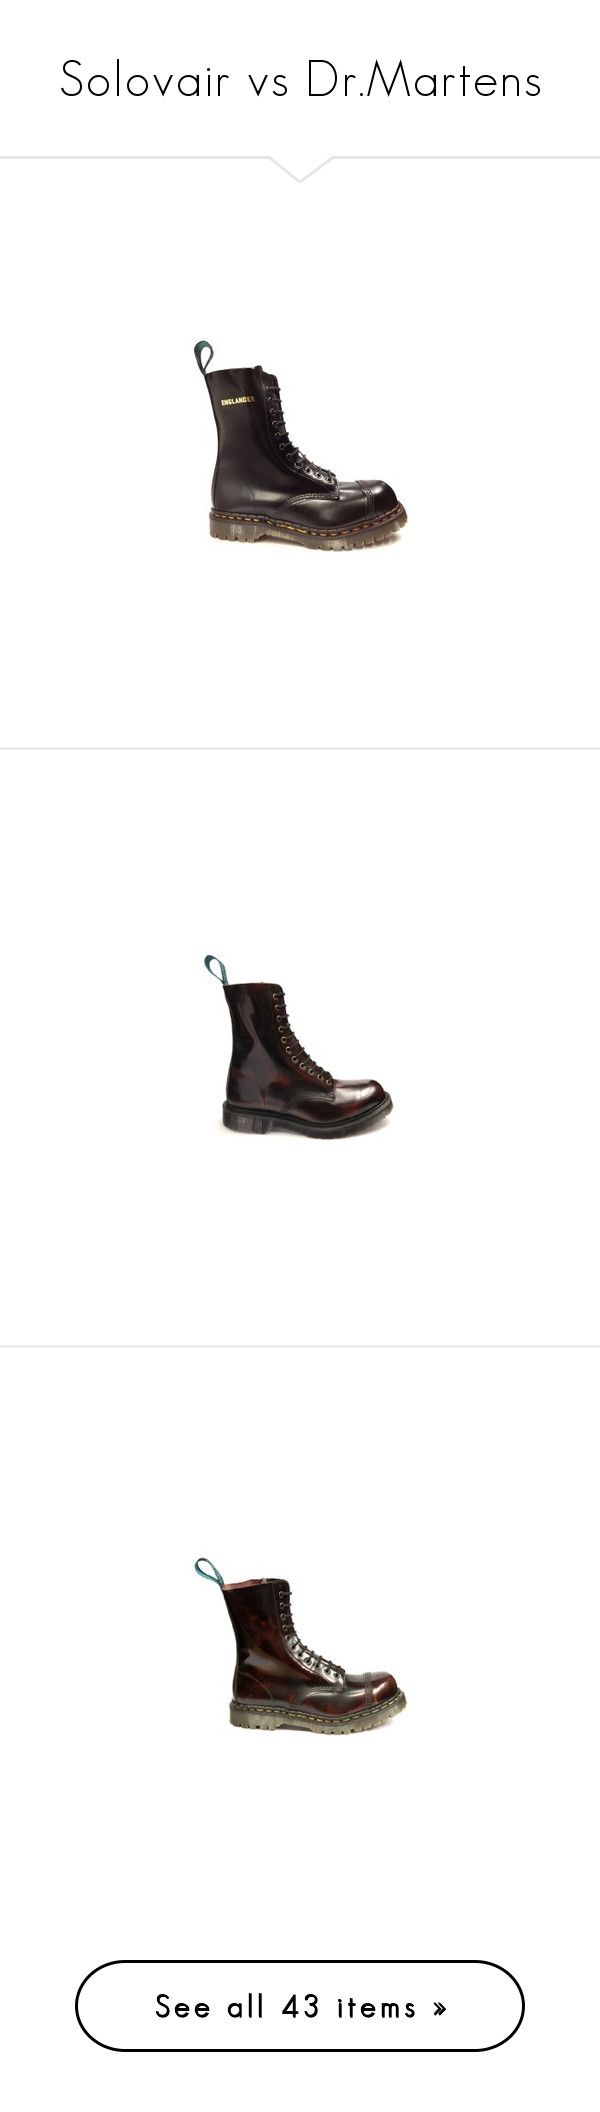 """""""Solovair vs Dr.Martens"""" by lorika-borika on Polyvore featuring shoes, boots, safety toe caps, safety toe shoes, real leather boots, black leather boots, leather shoes, burgundy leather boots, genuine leather boots и real leather shoes"""